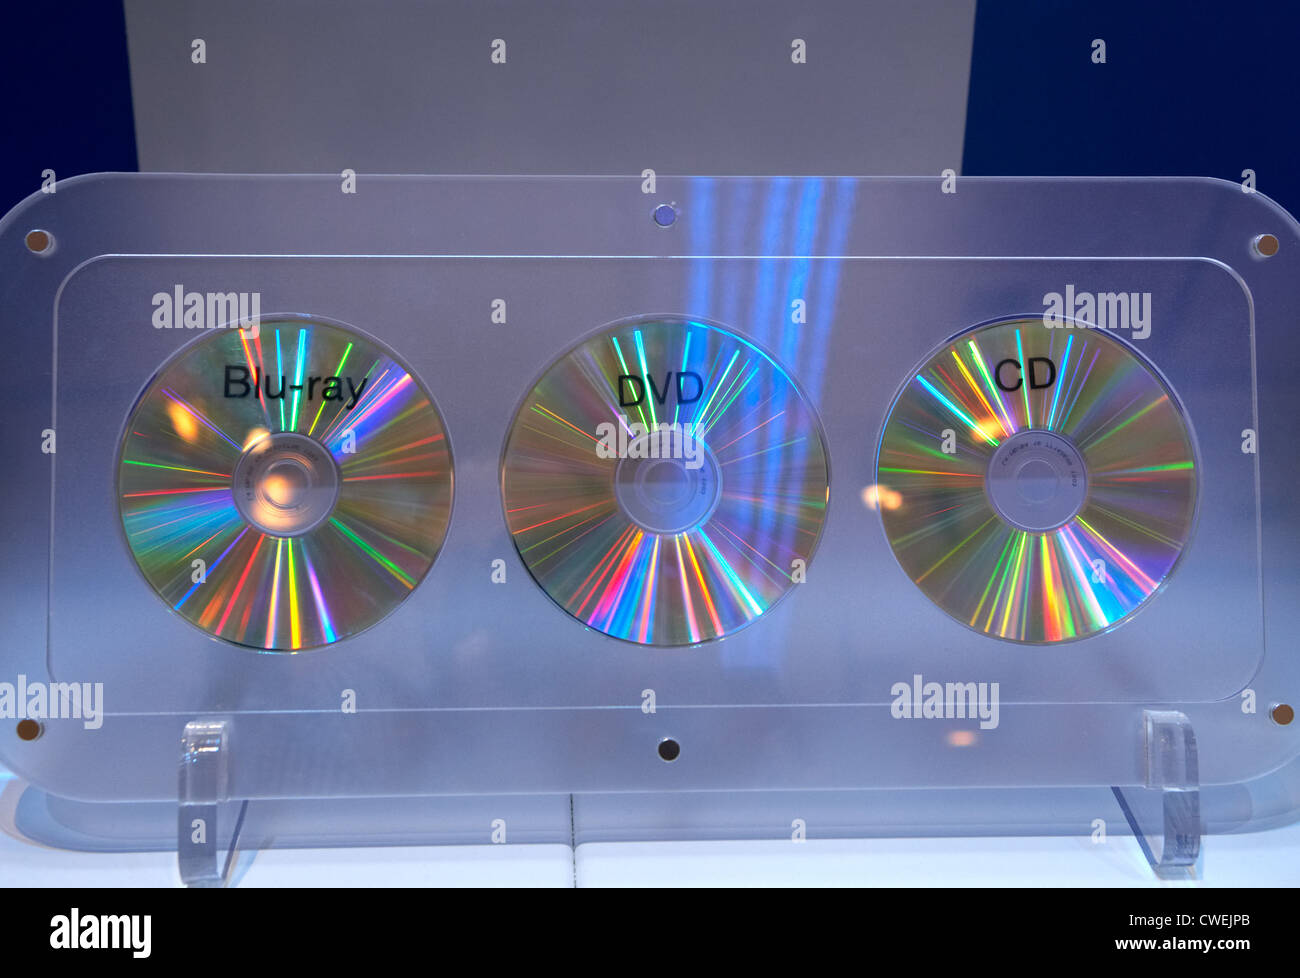 The media Blu-ray Disc, DVD and CD side by side - Stock Image